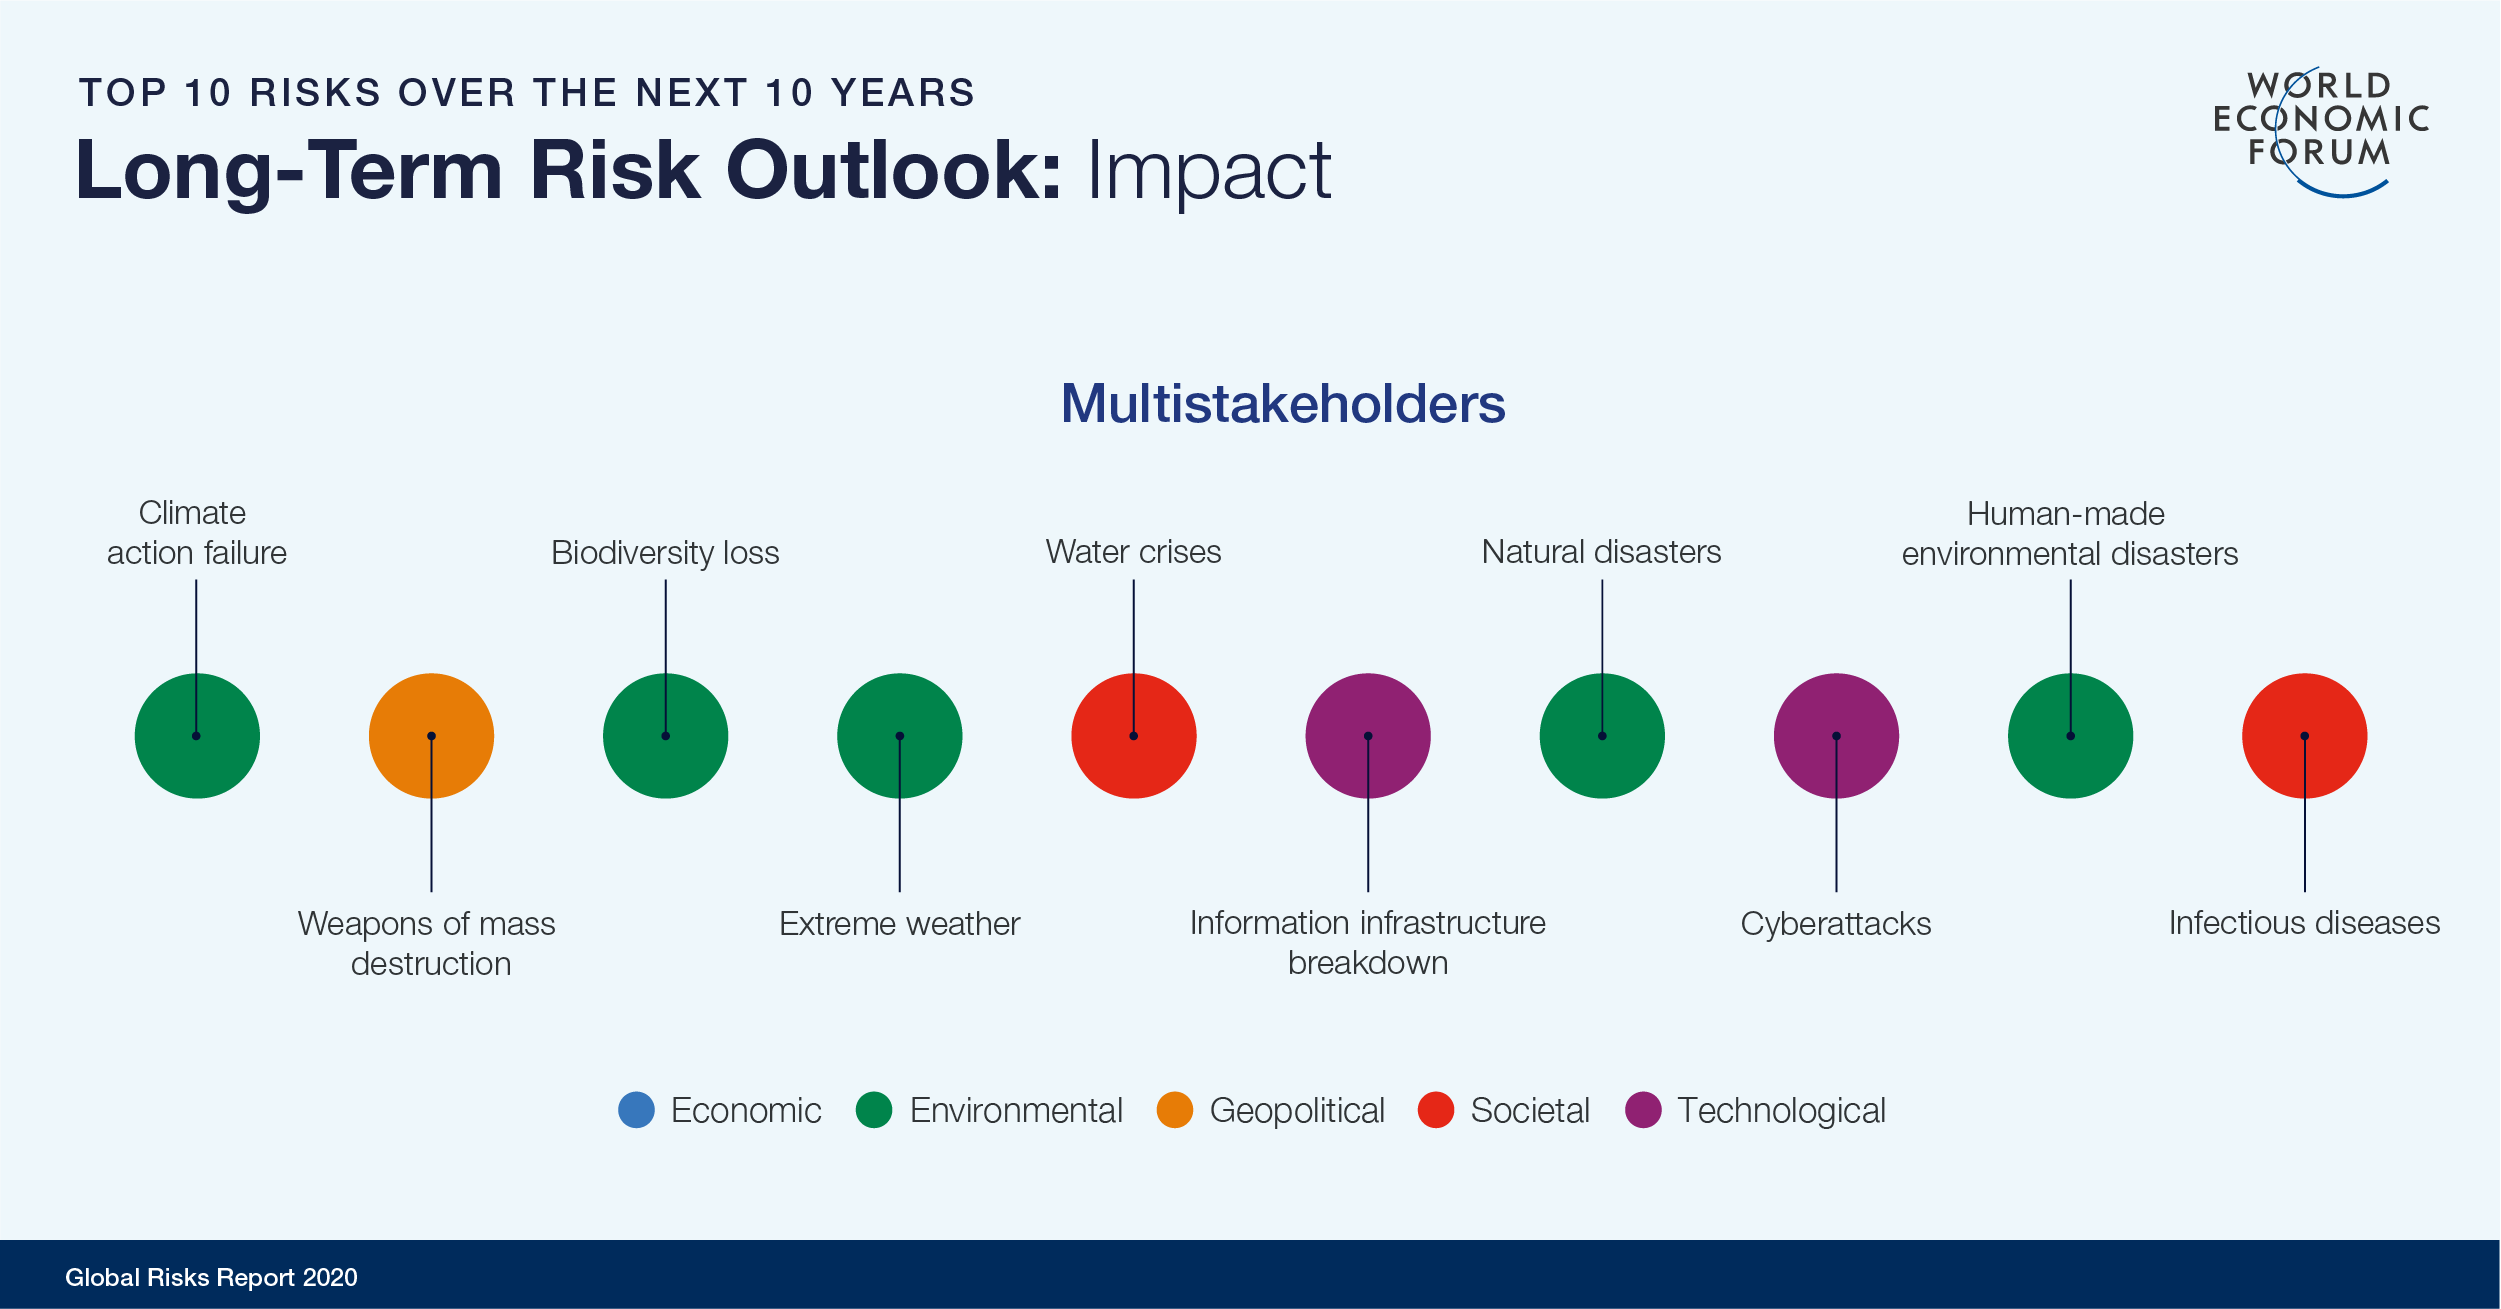 WEF Global Risks Report 2020 Top 10 risks in terms of impact